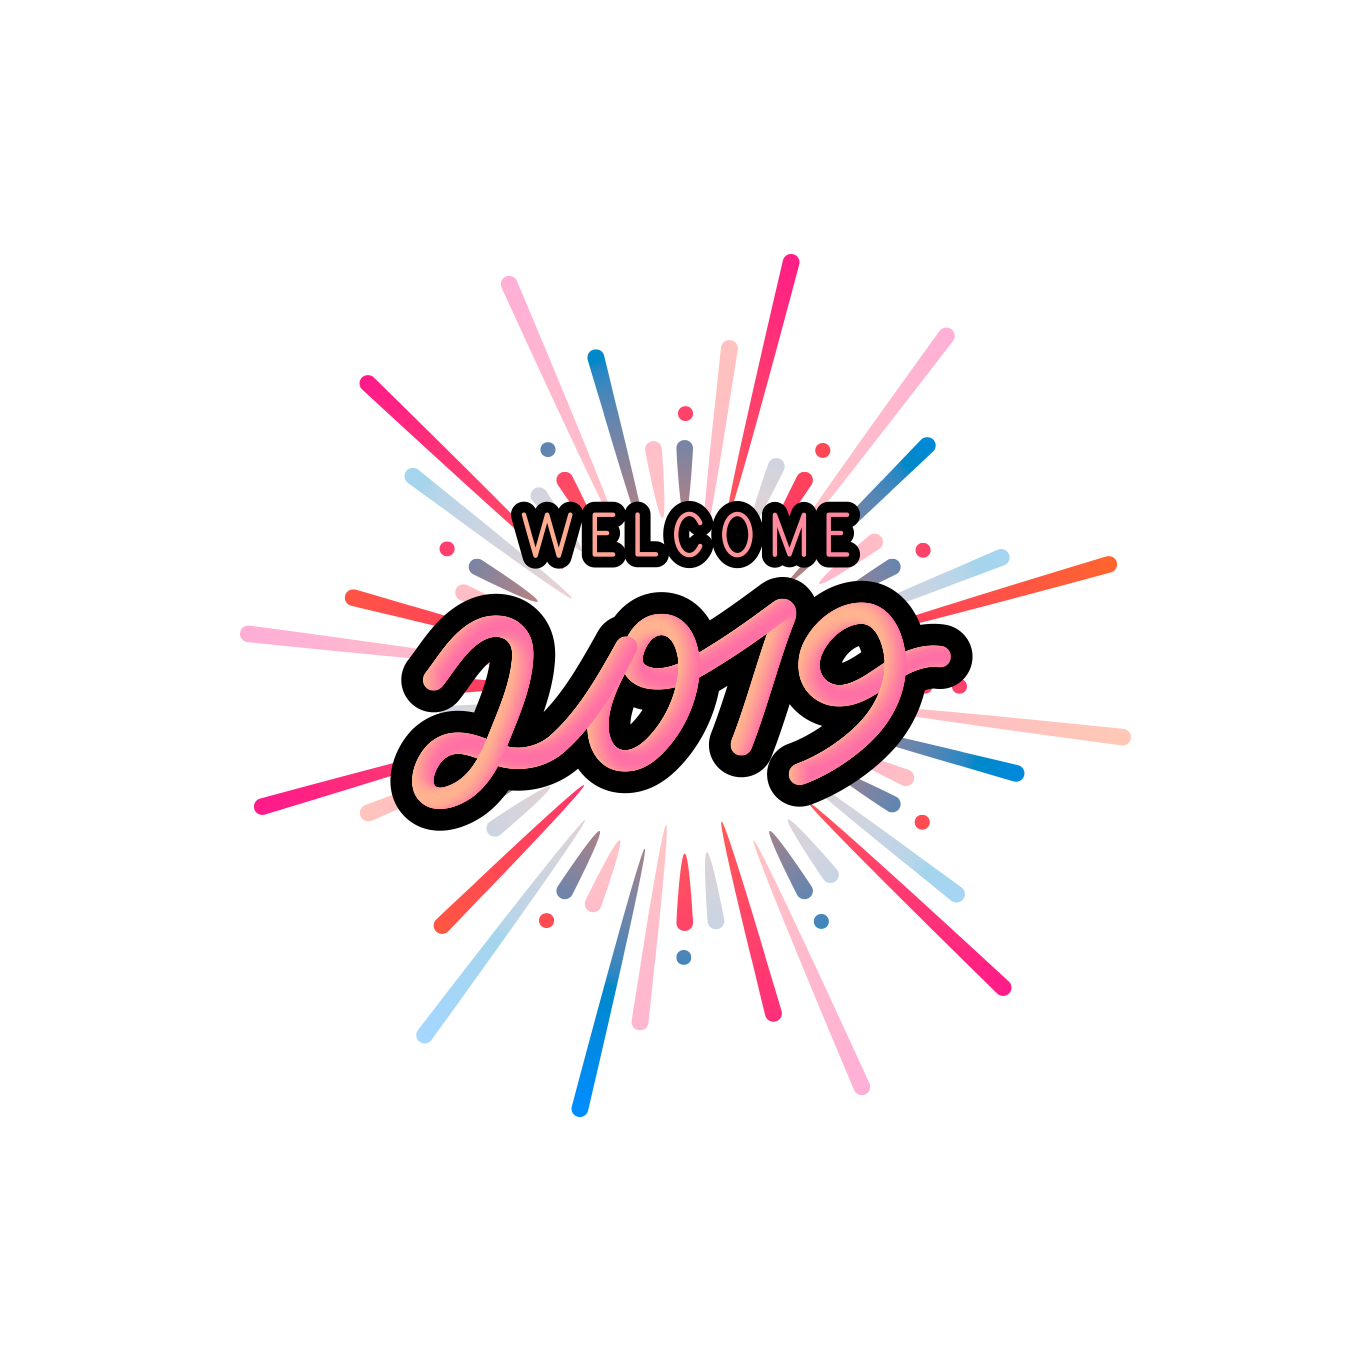 Welcome 2019 clipart clip transparent stock Welcome 2019 PNG | HD Welcome 2019 PNG Image Free Download clip transparent stock